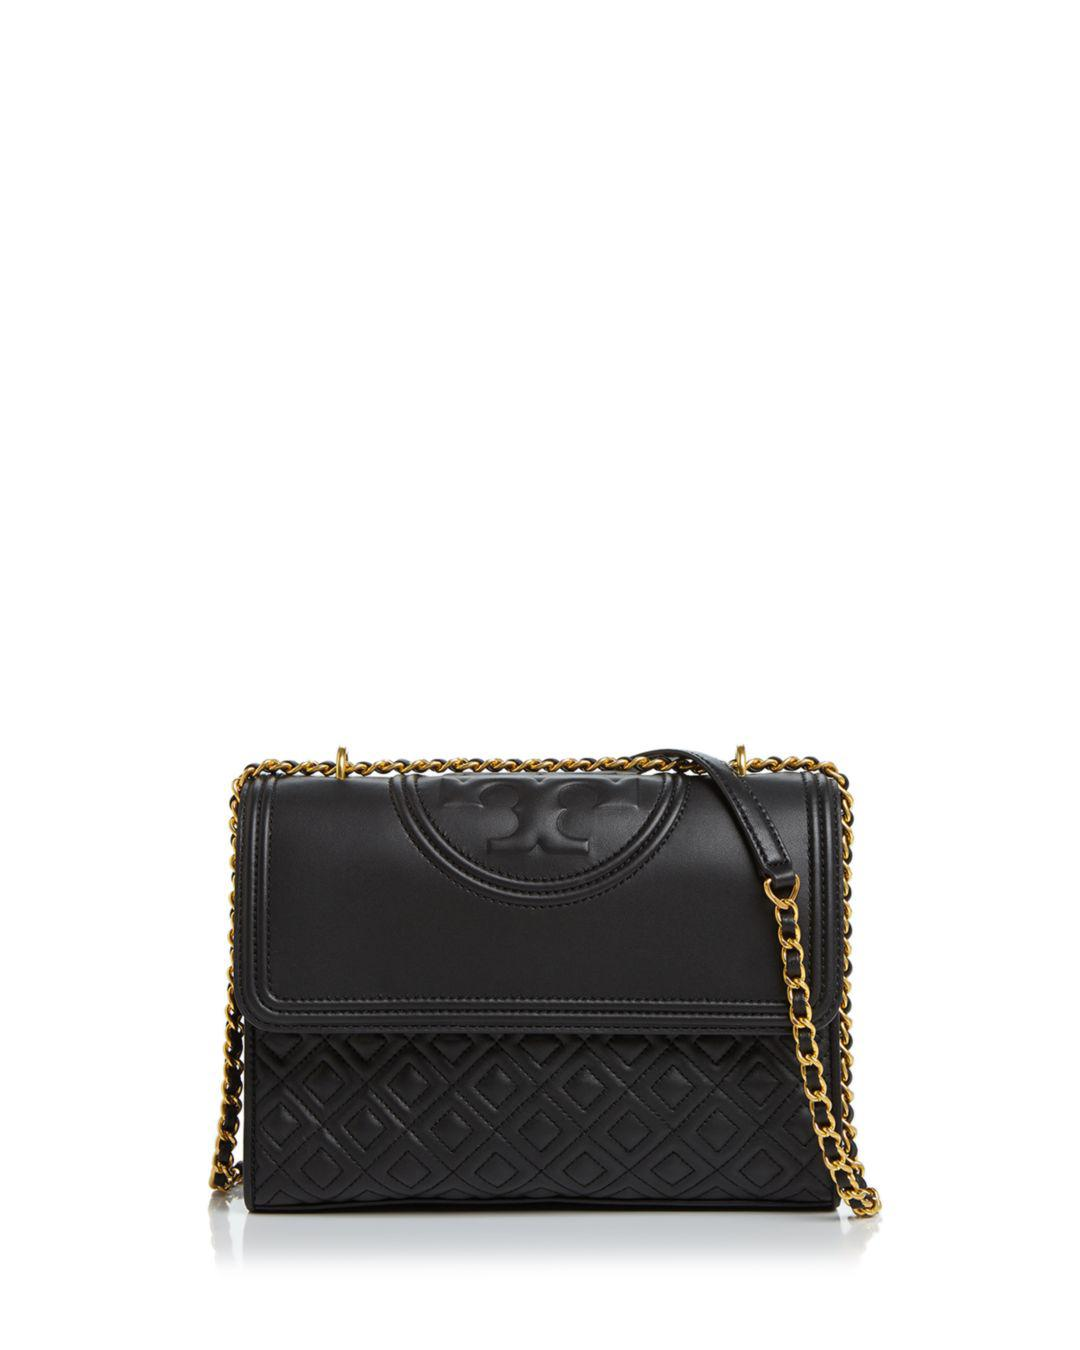 73f5b4cbc24a Lyst - Tory Burch Fleming Convertible Leather Shoulder Bag in Black